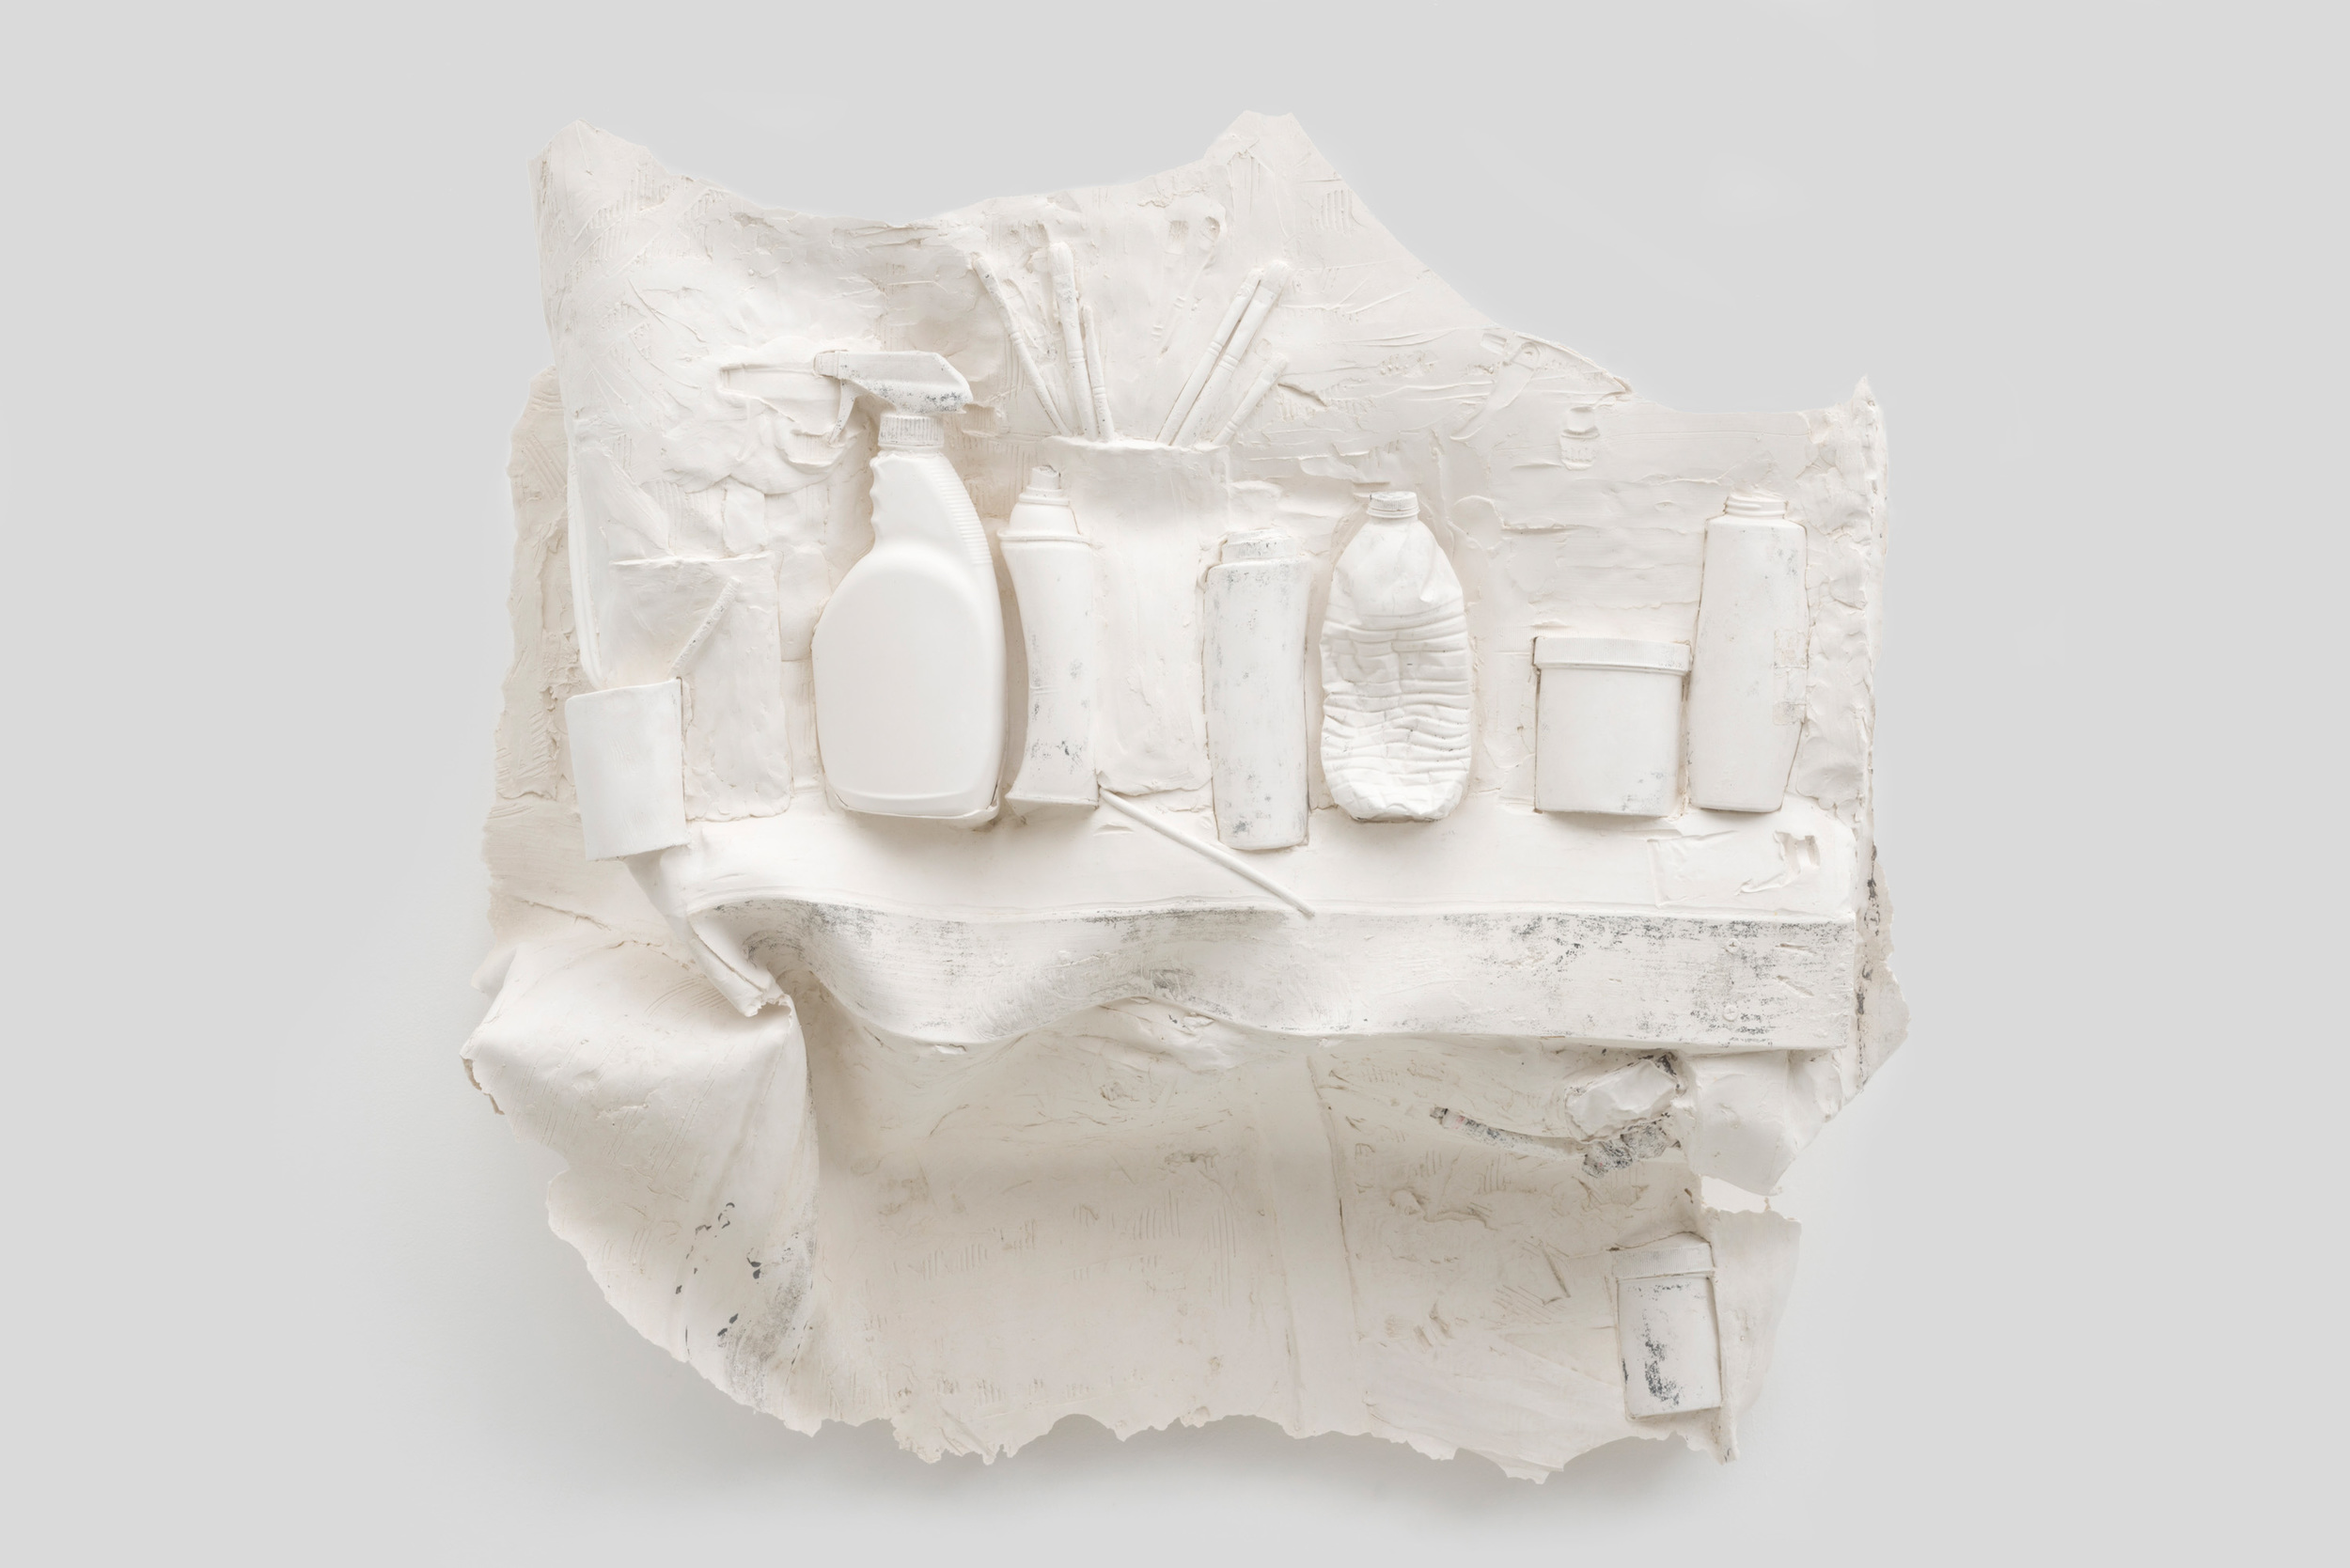 Shelved , 2014 Gypsum cement, fiberglass cloth, and wood 35 x 36 x 18 inches